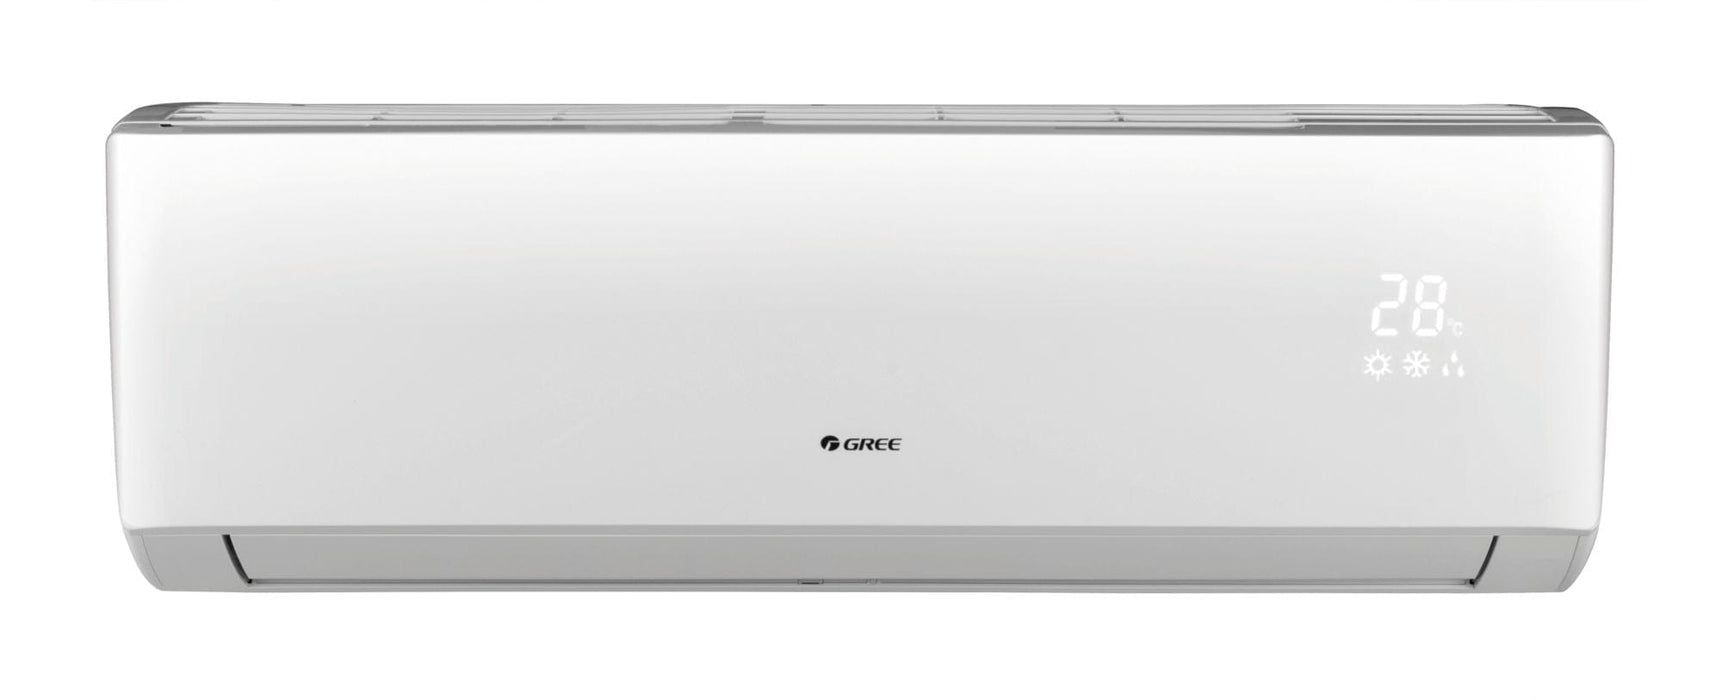 Gree 9,000 BTU 16 SEER LIVO+ Wall Mount Ductless Mini Split Indoor Unit 115V